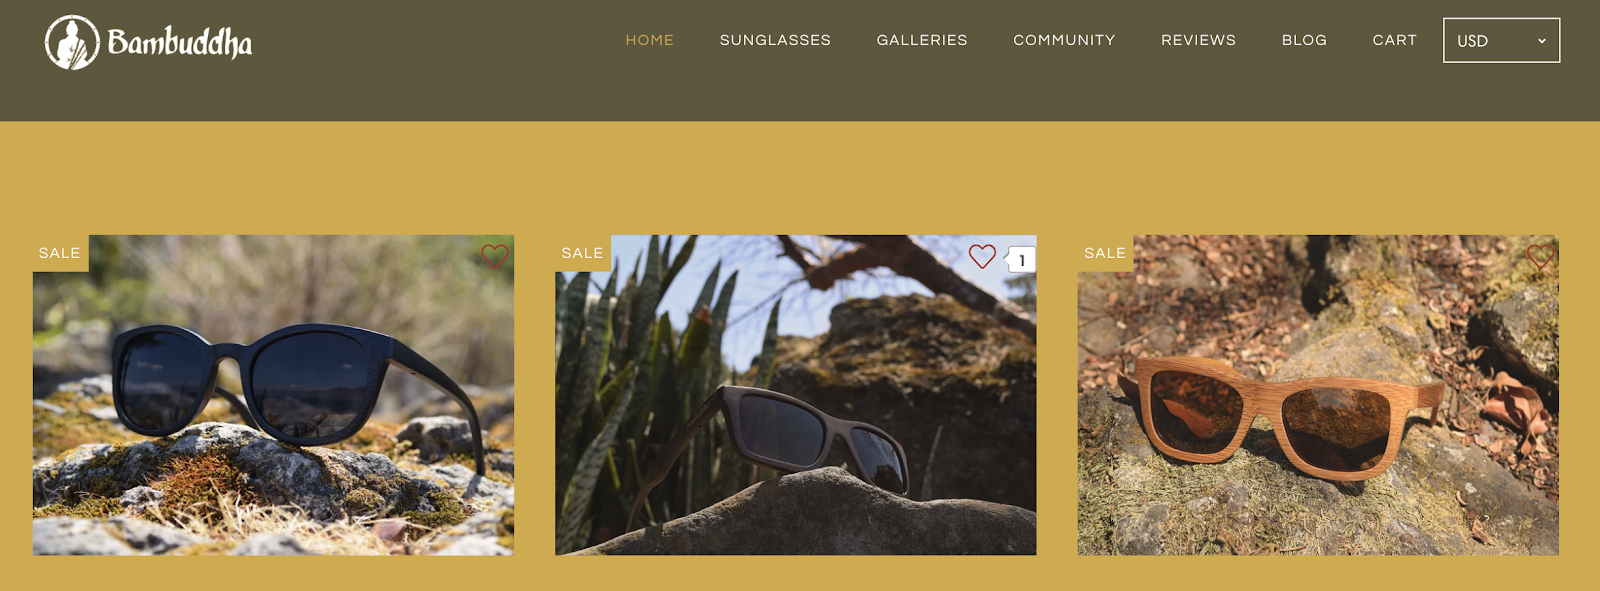 Bambuddha Sunglasses | Partnership Program